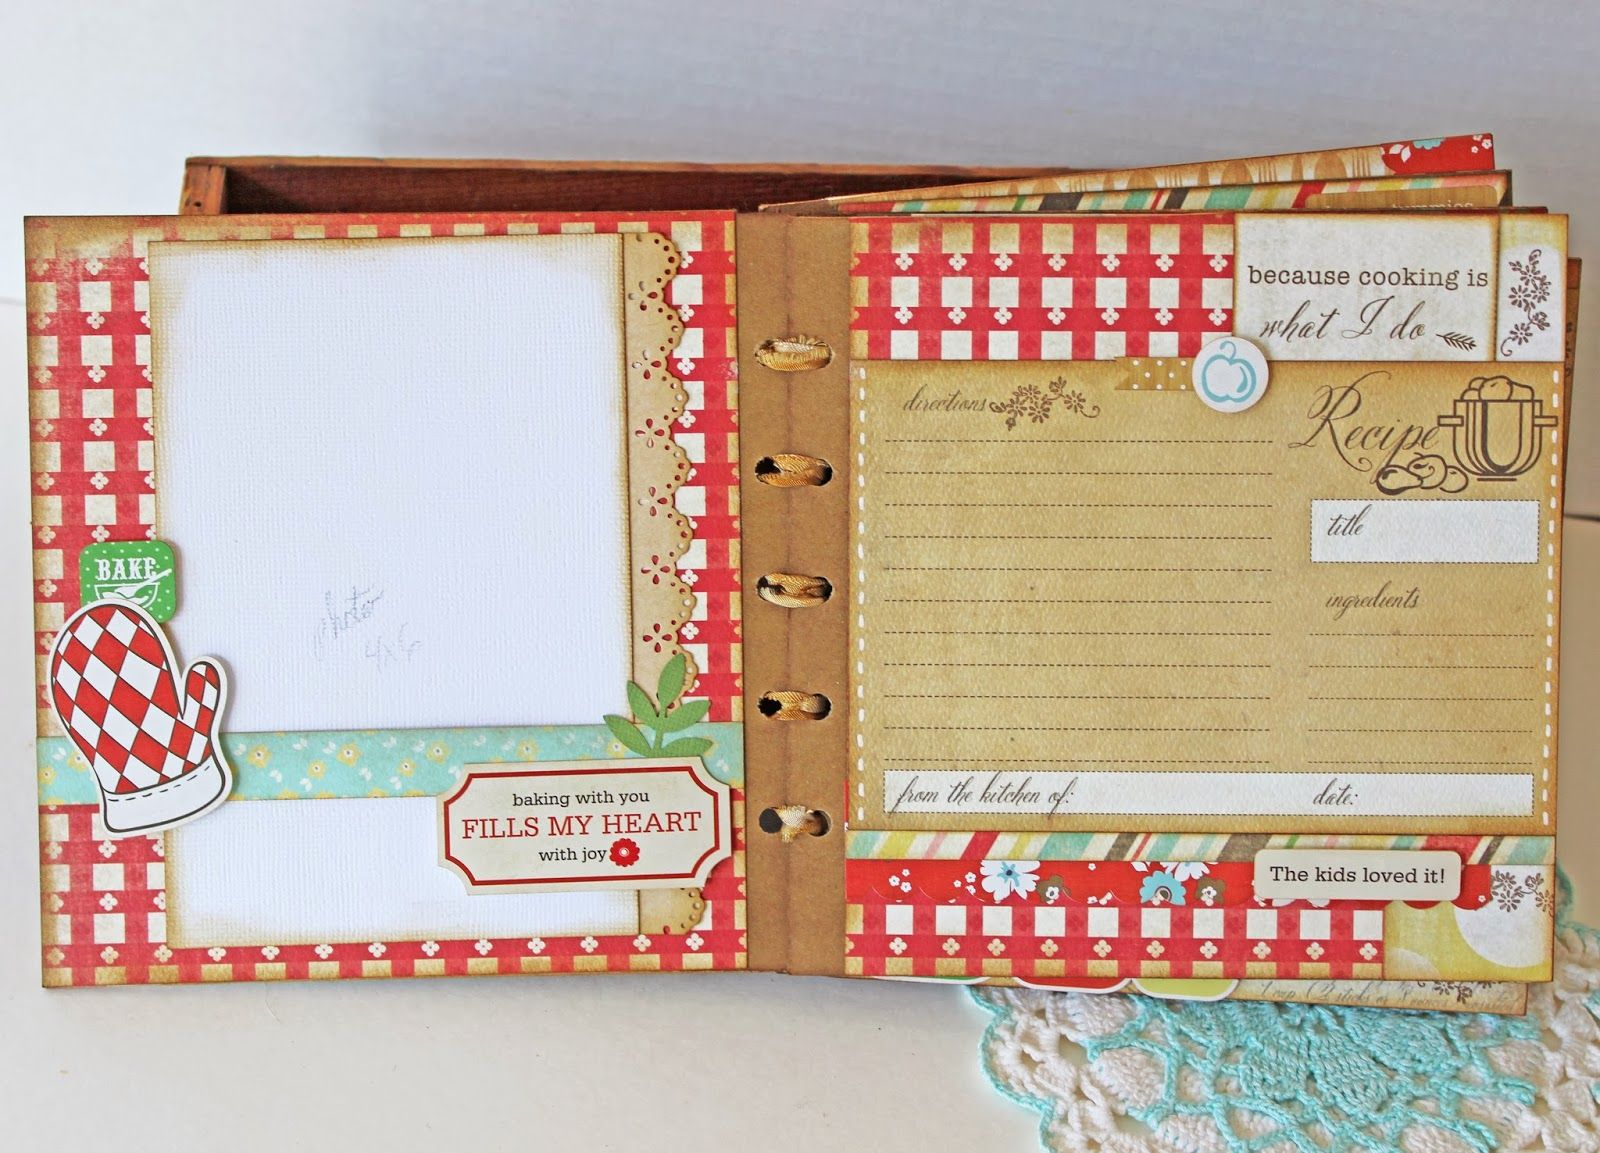 How to scrapbook recipes ideas - This Past Weekend I Taught A Mini Album Class At Scrapbook Generation It Was So Much Fun I Loved Creating This Mi